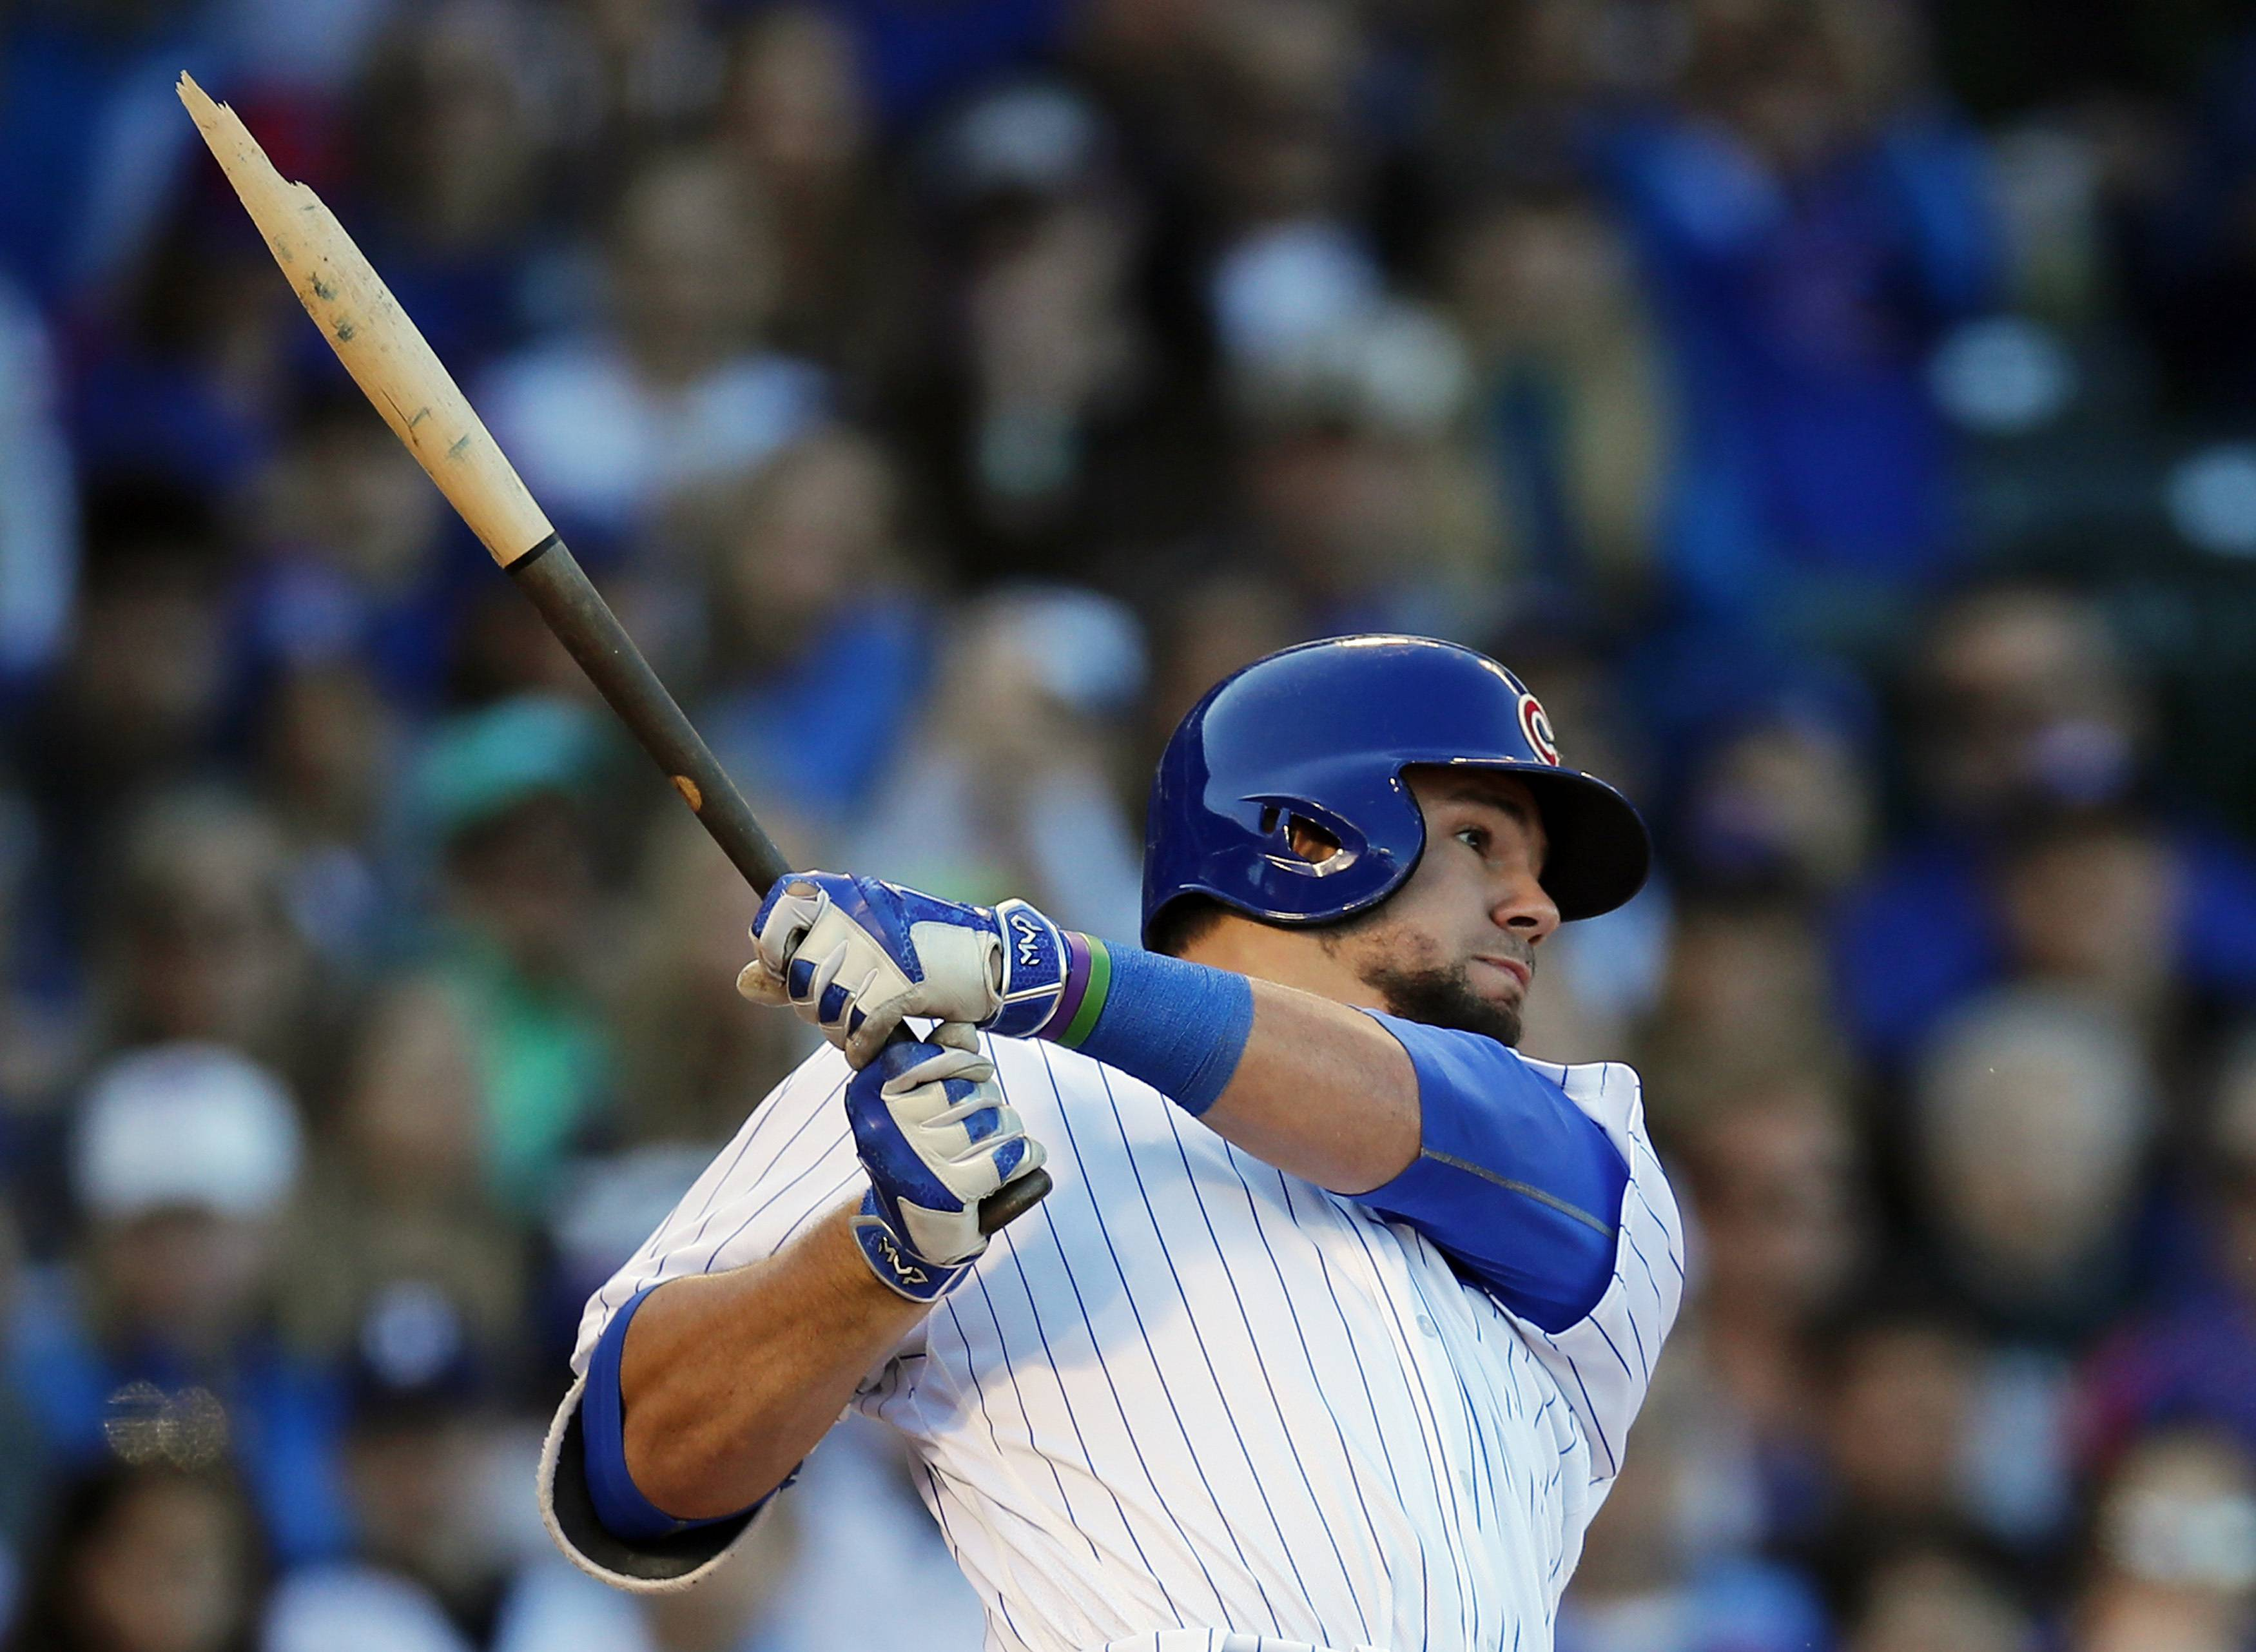 Chicago Cubs' Kyle Schwarber hopes to shine in postseason again